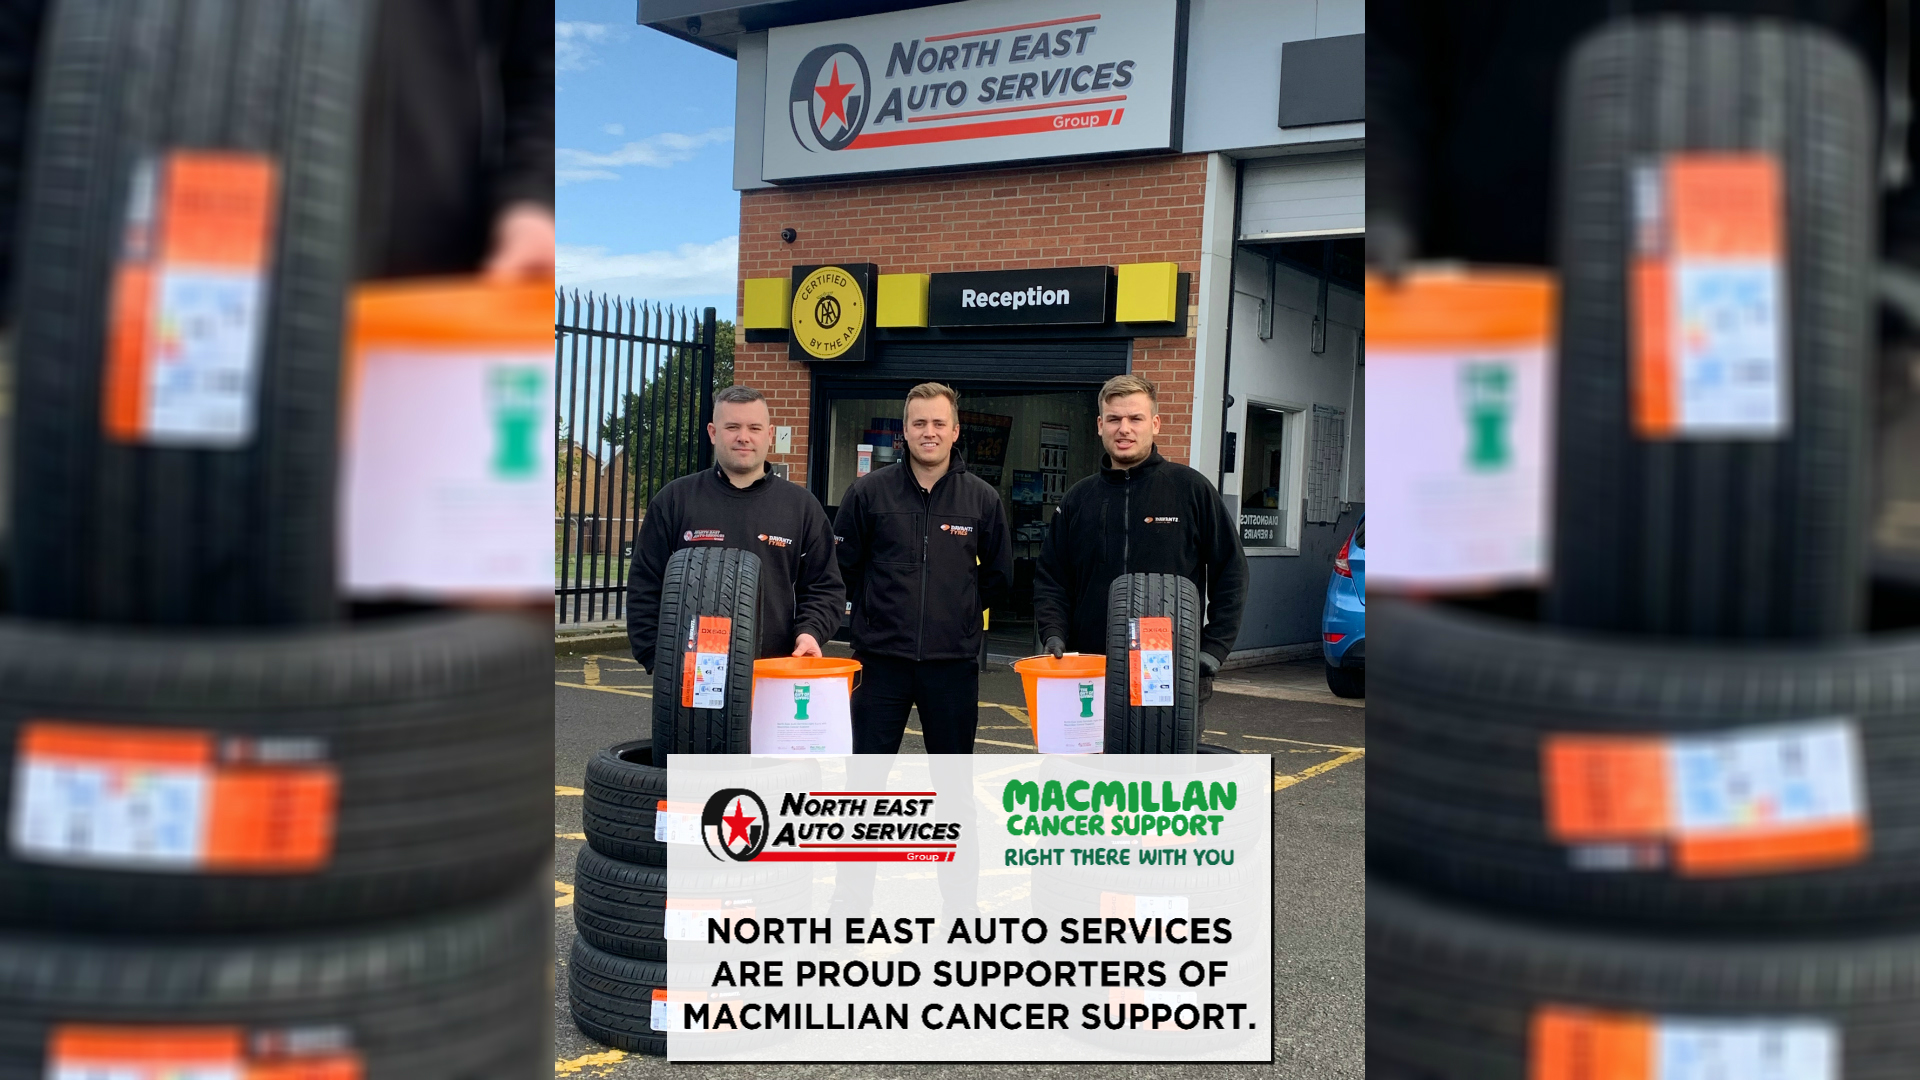 North East Auto Services right there with Macmillan Cancer Support